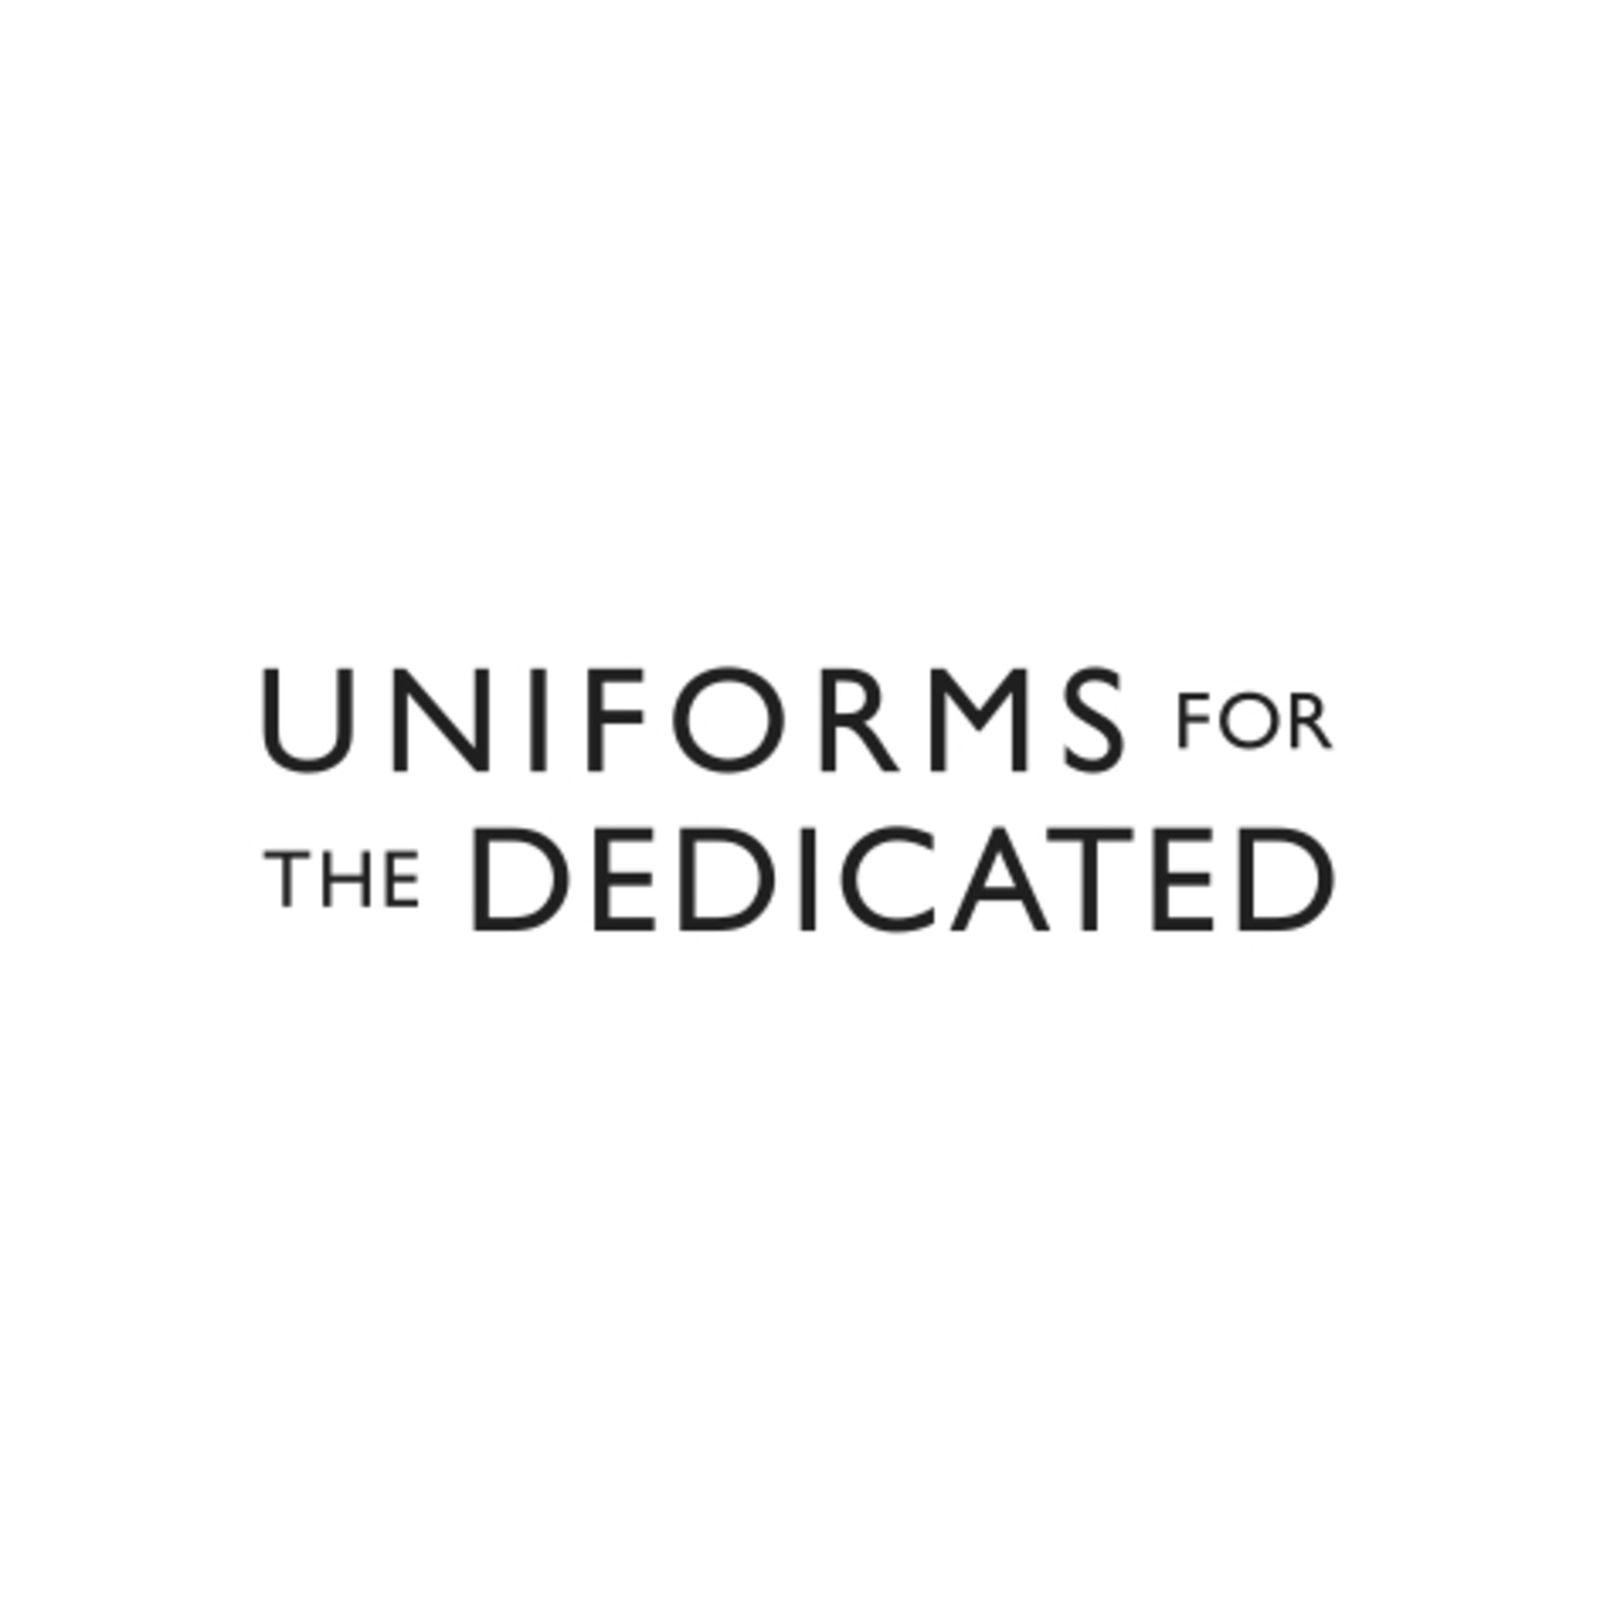 UNIFORMS FOR THE DEDICATED